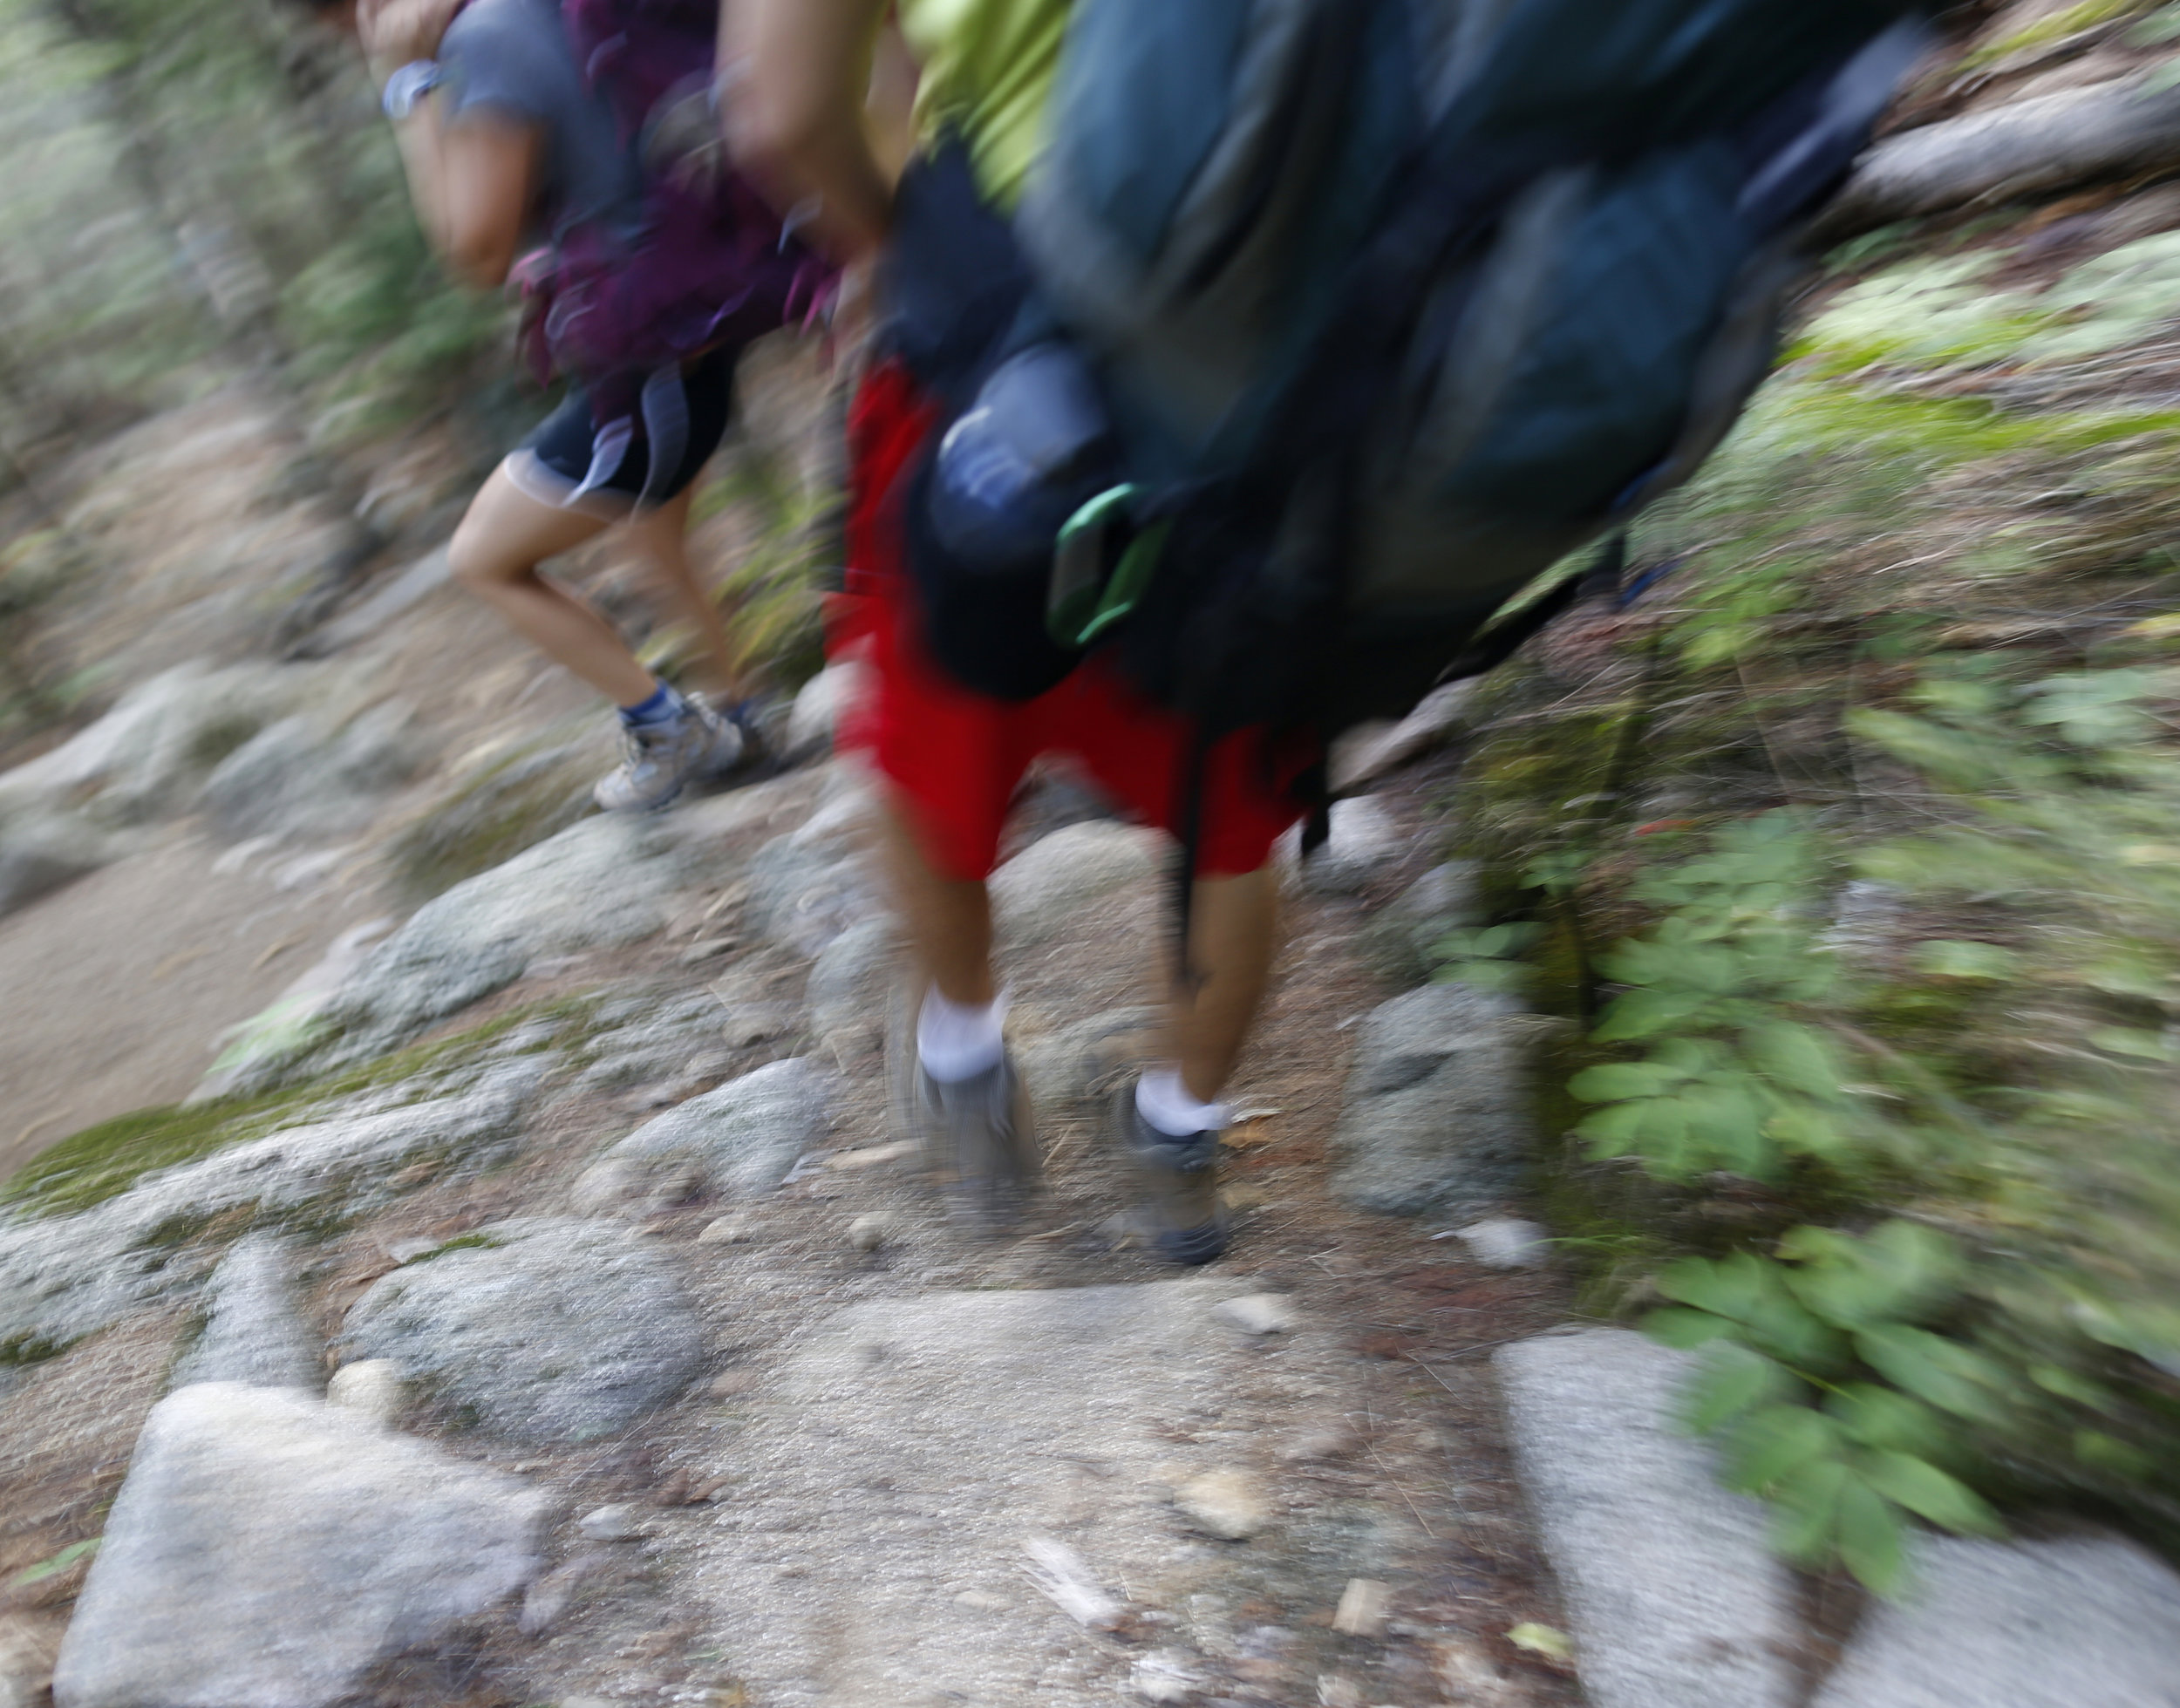 The group of six freshmen and two juniors hiked thirty miles over three days, including over the top of Katahdin, Maine's highest peak.